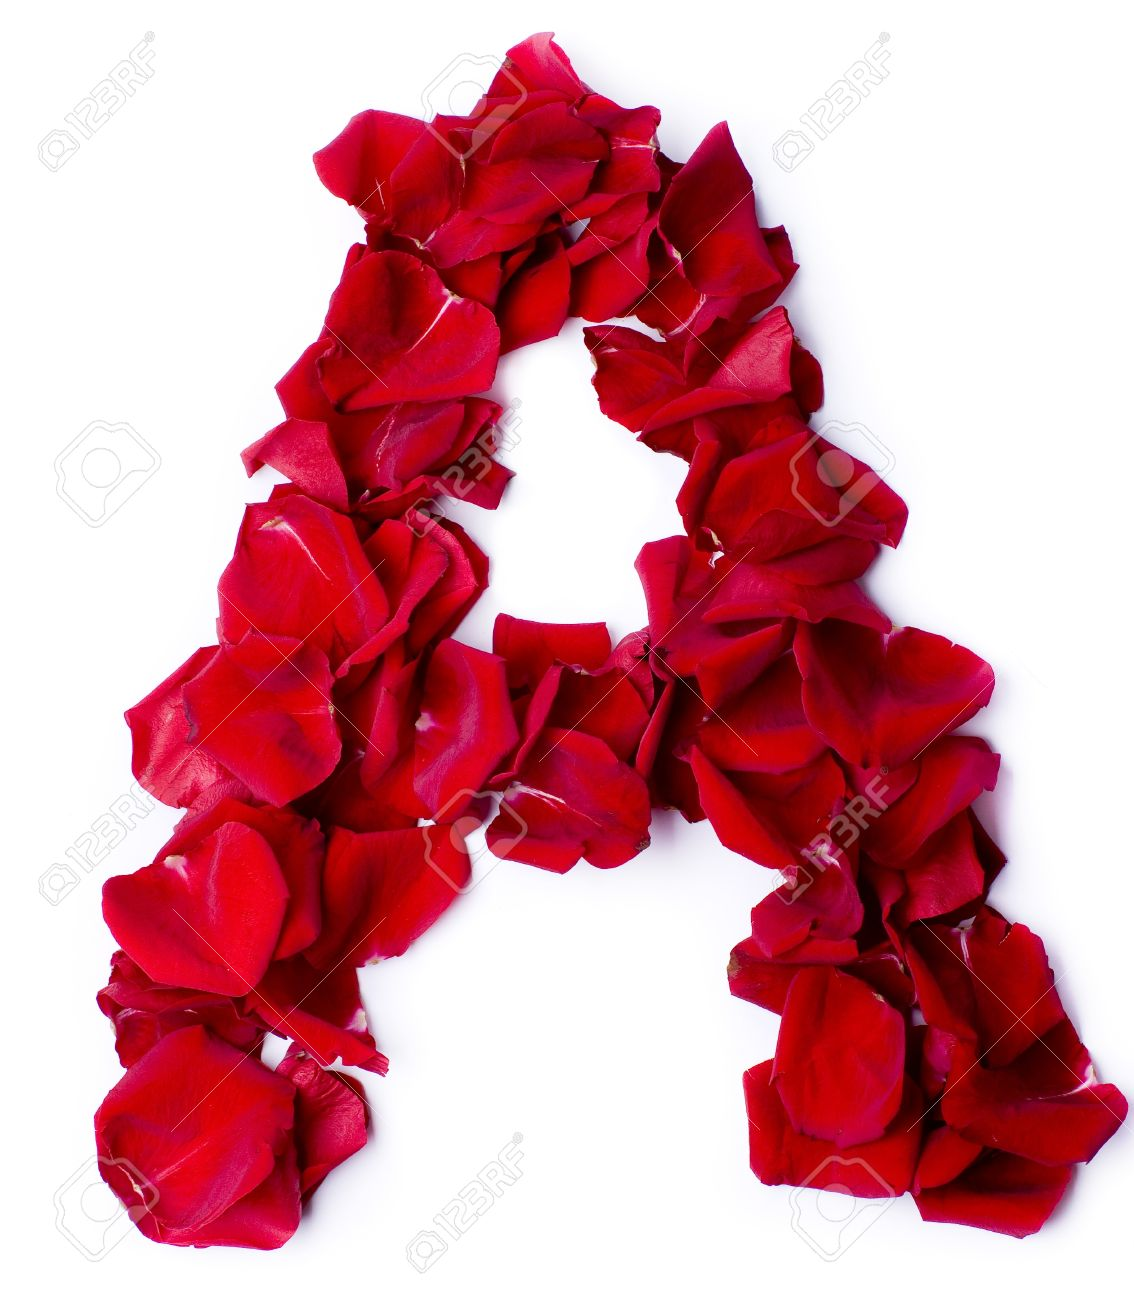 Alphabet Letter A Made From Red Petals Rose Isolated On A White ...